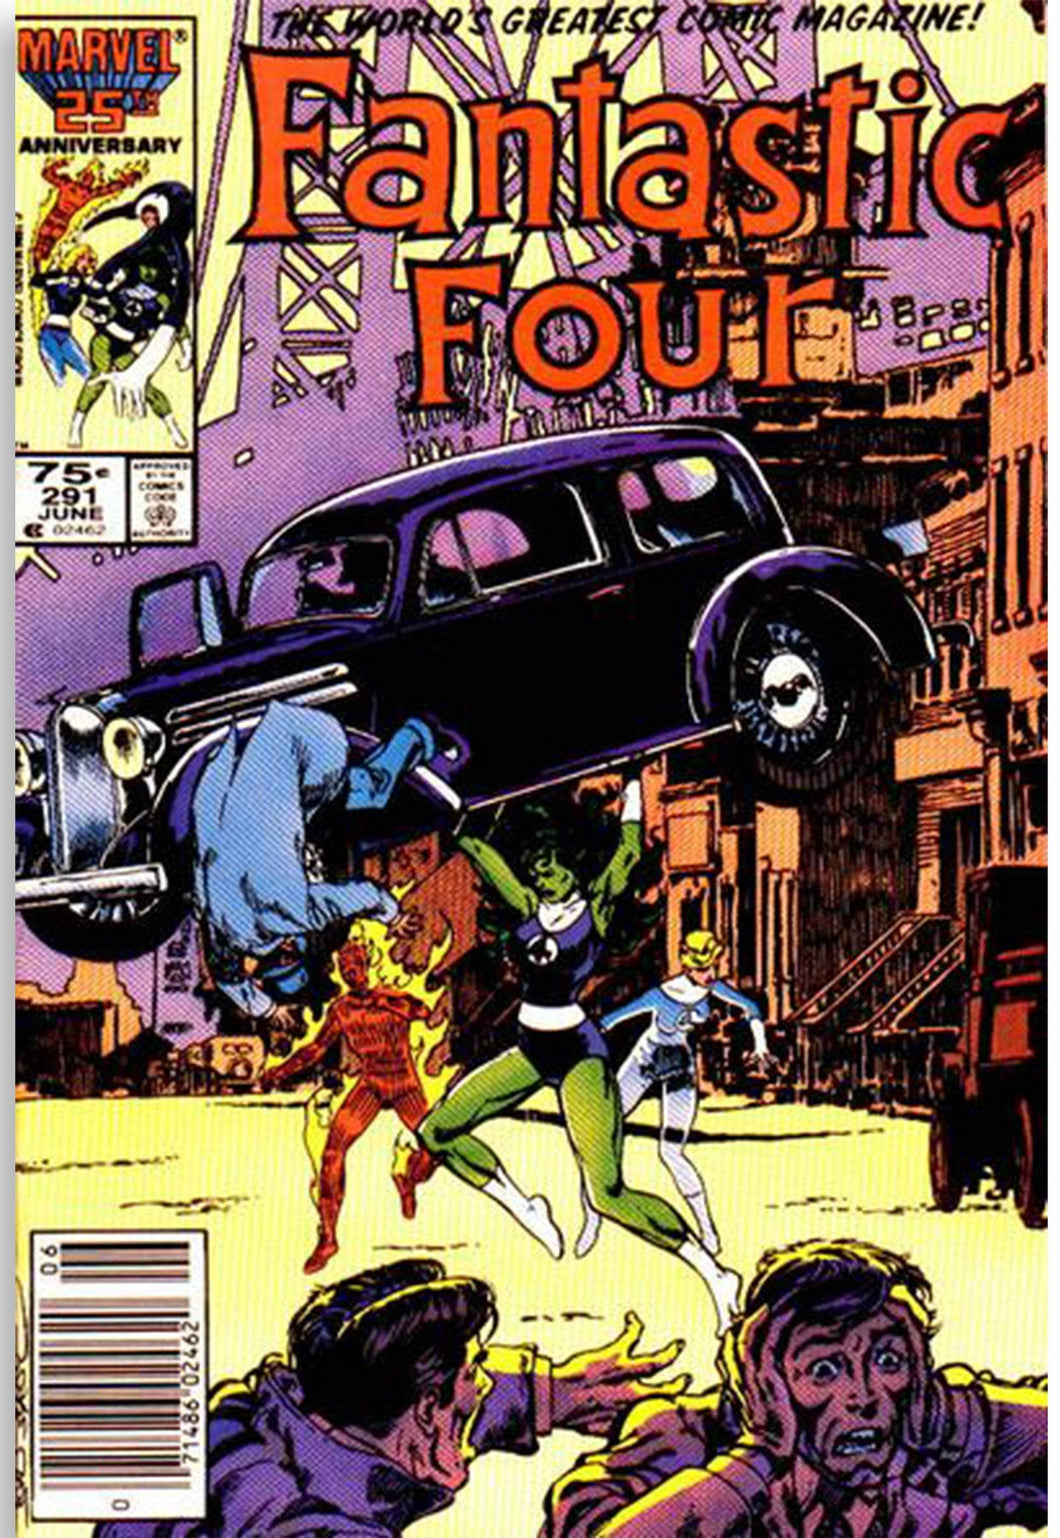 Fantastic Four #291 - Action Comics #1 Homage